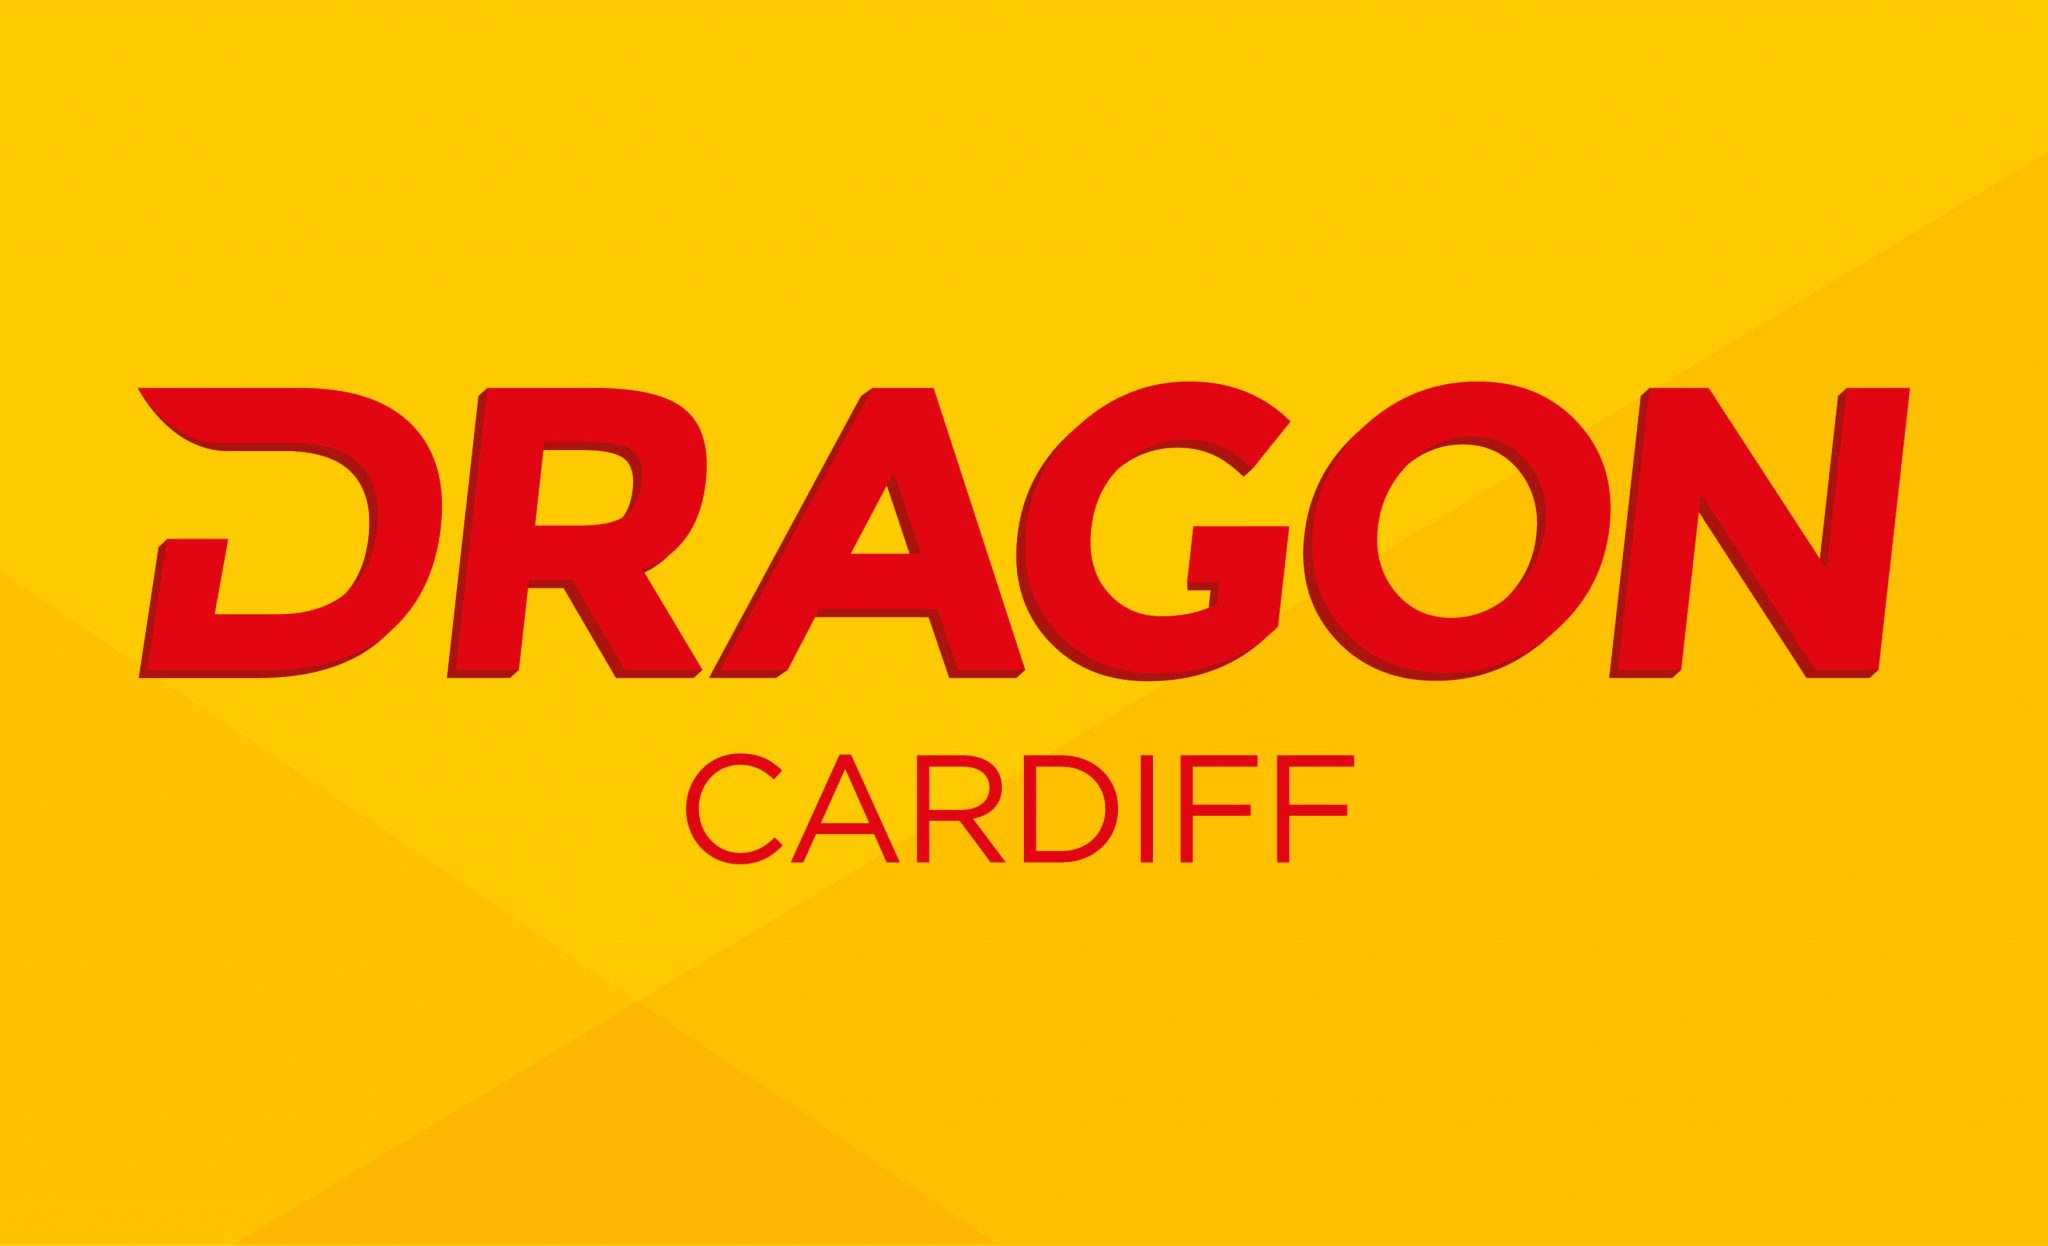 Dragon-logo